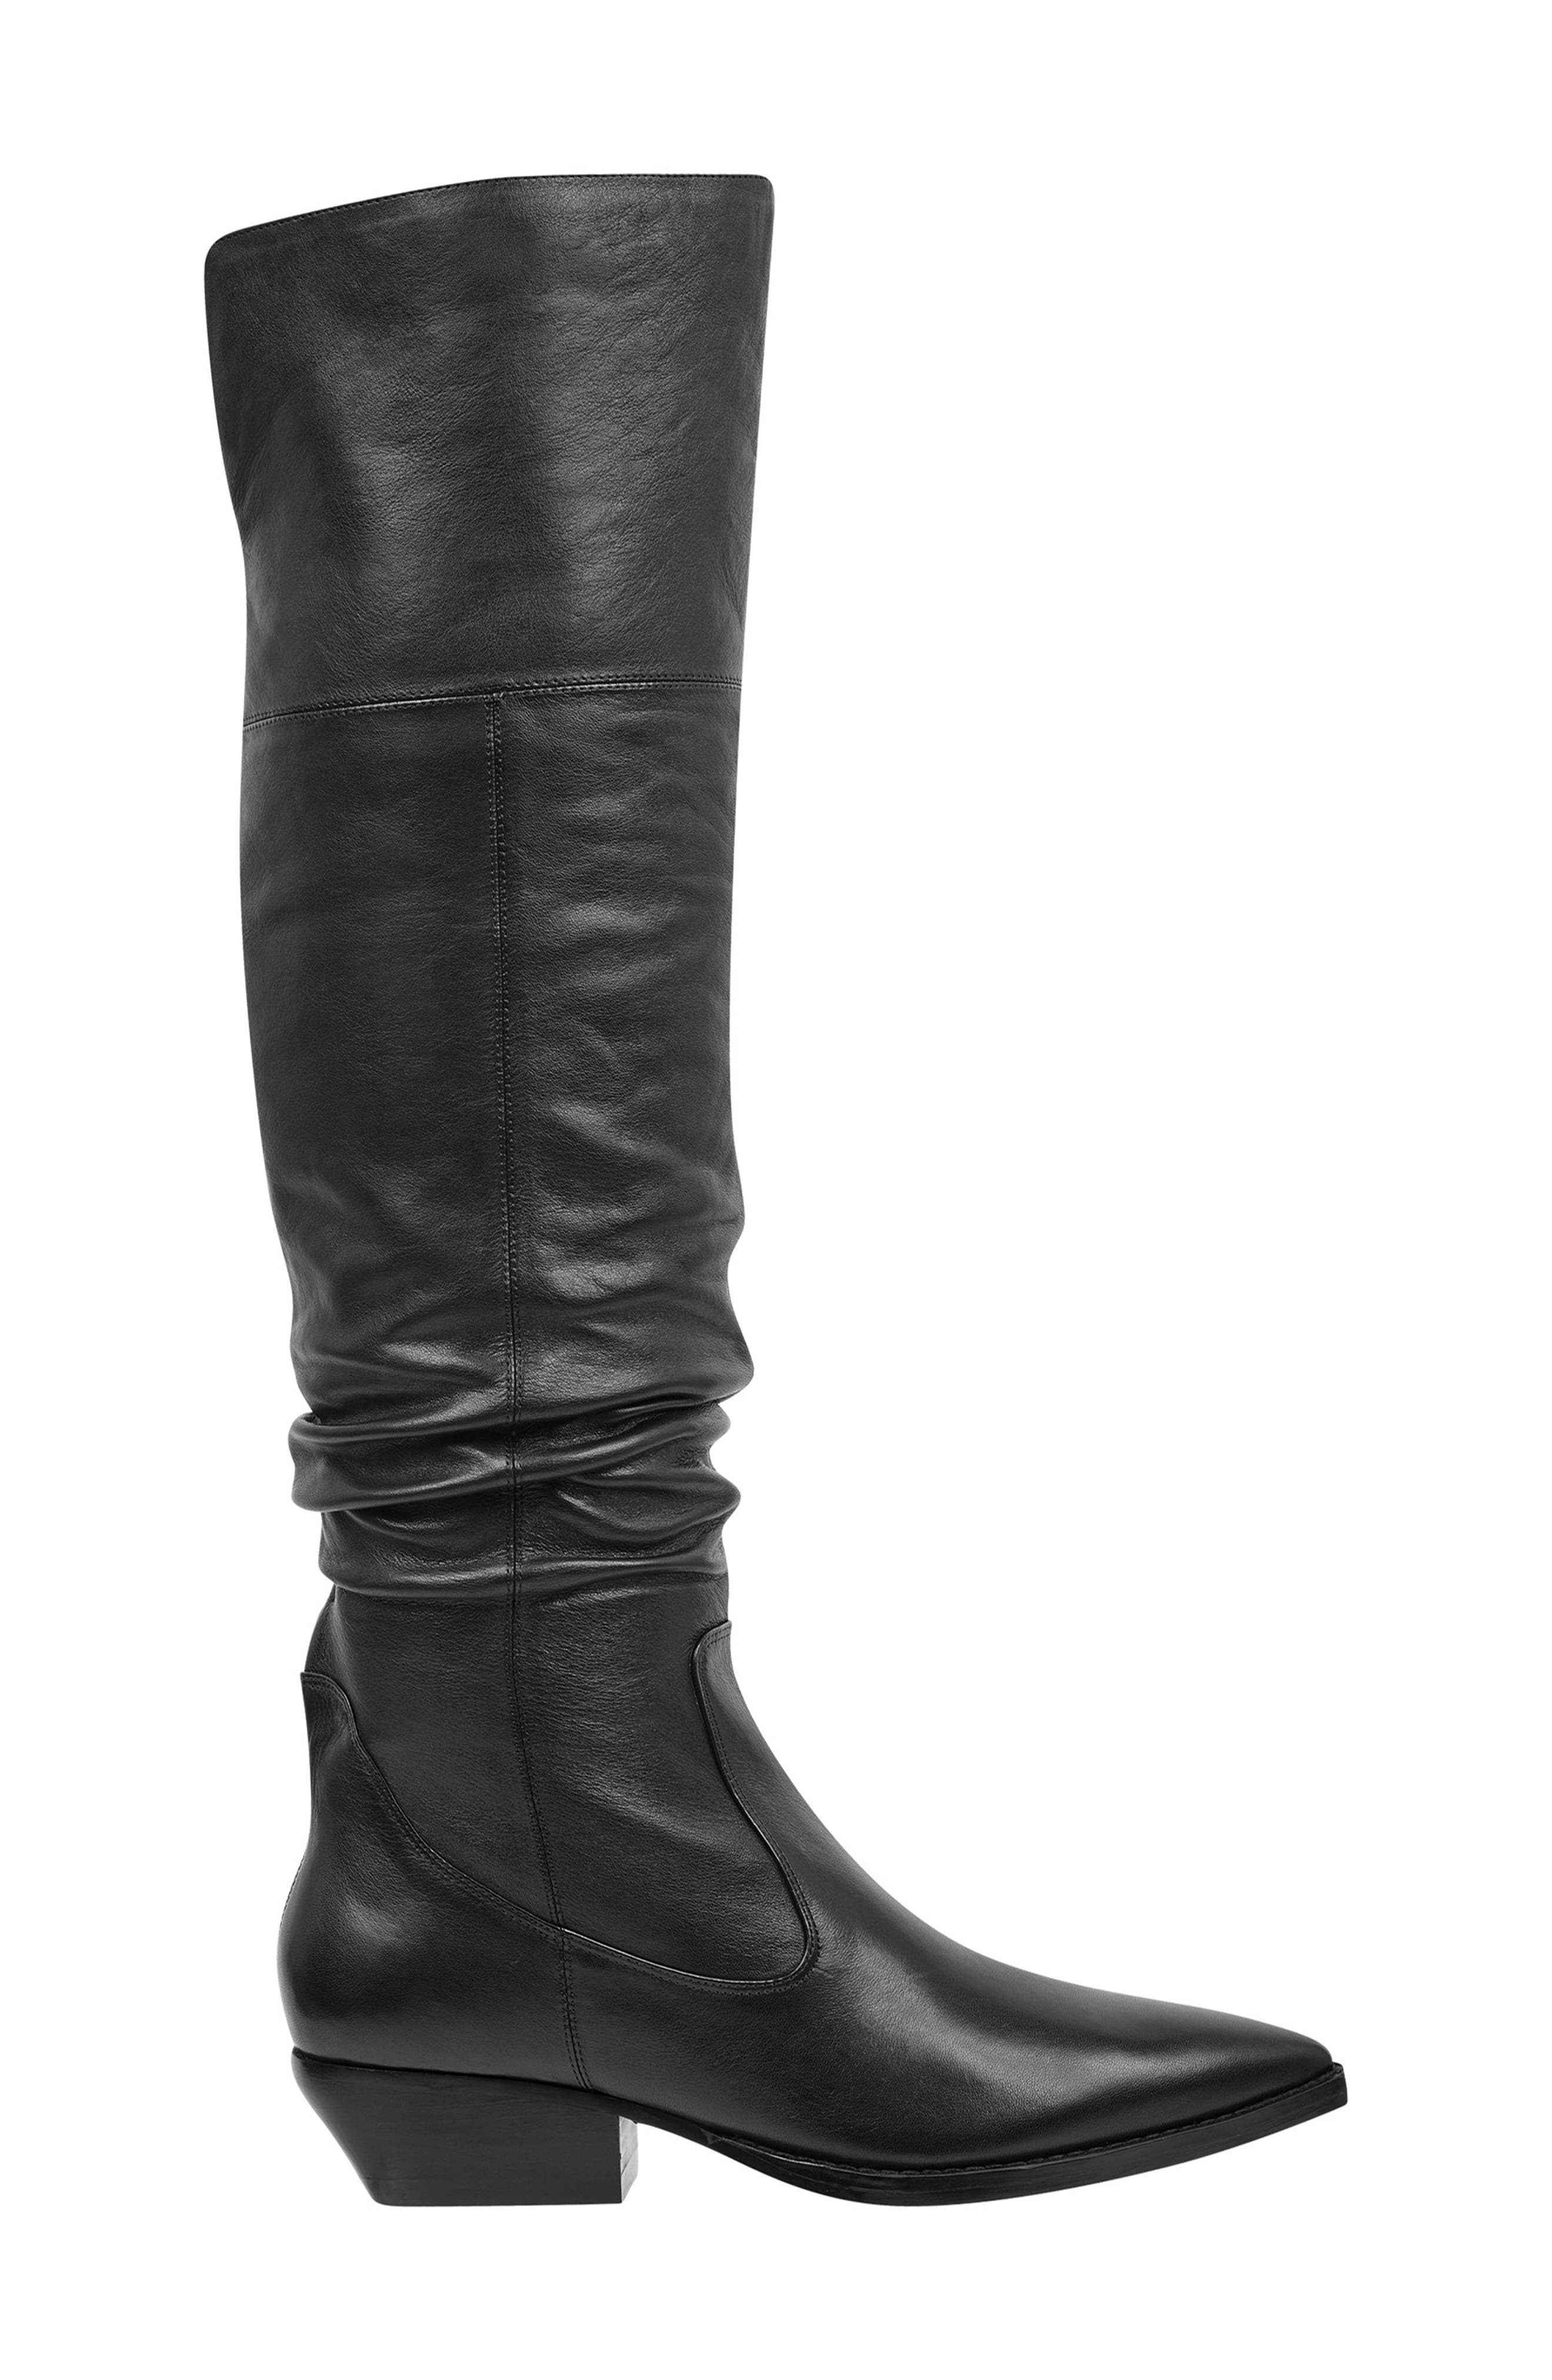 Ocea Over the Knee Boot,                             Alternate thumbnail 3, color,                             001